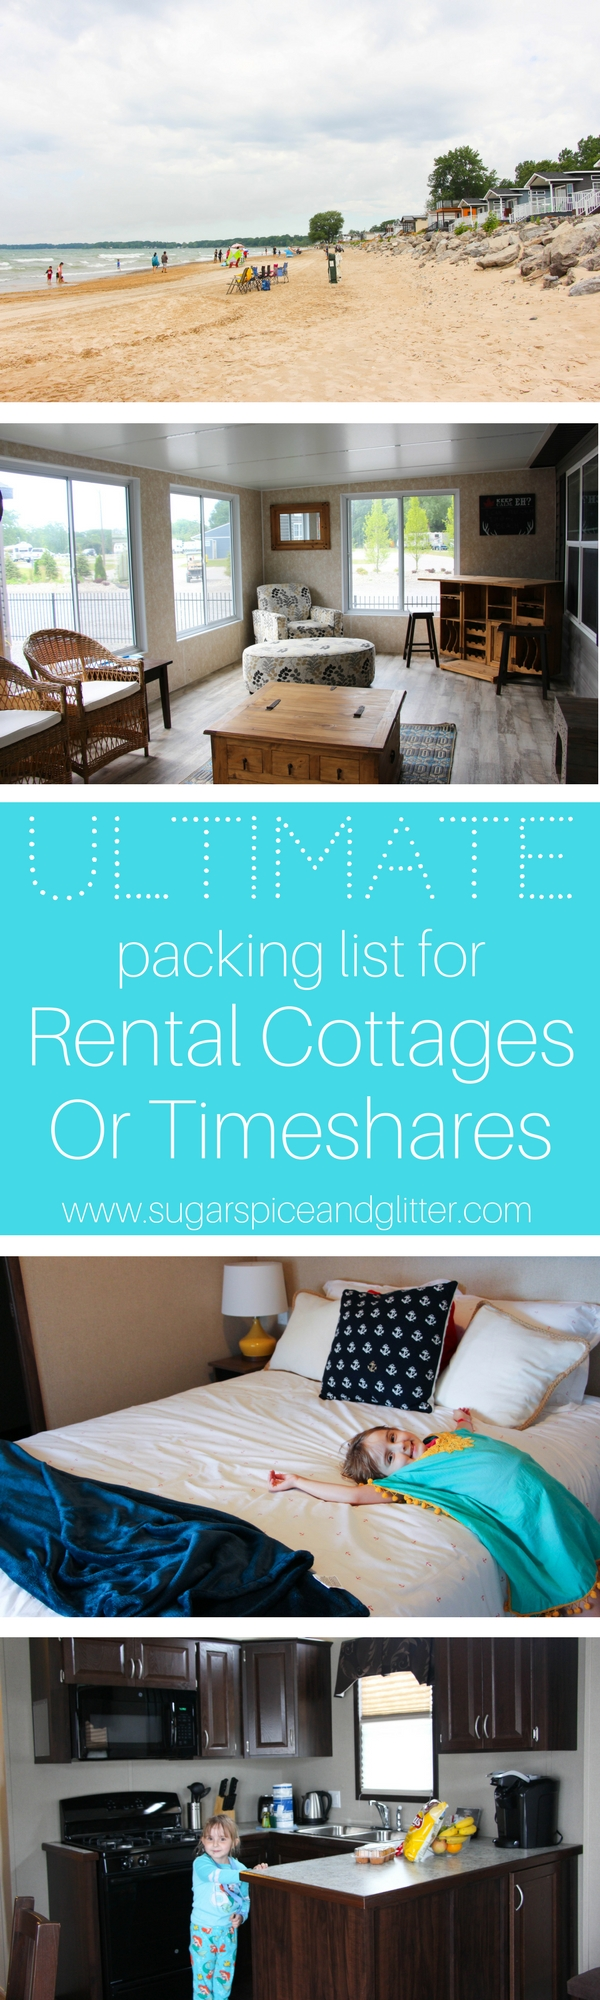 The Ultimate Packing list for Rental Cottages or Timeshares so you can leave for your vacation organized and stay on budget